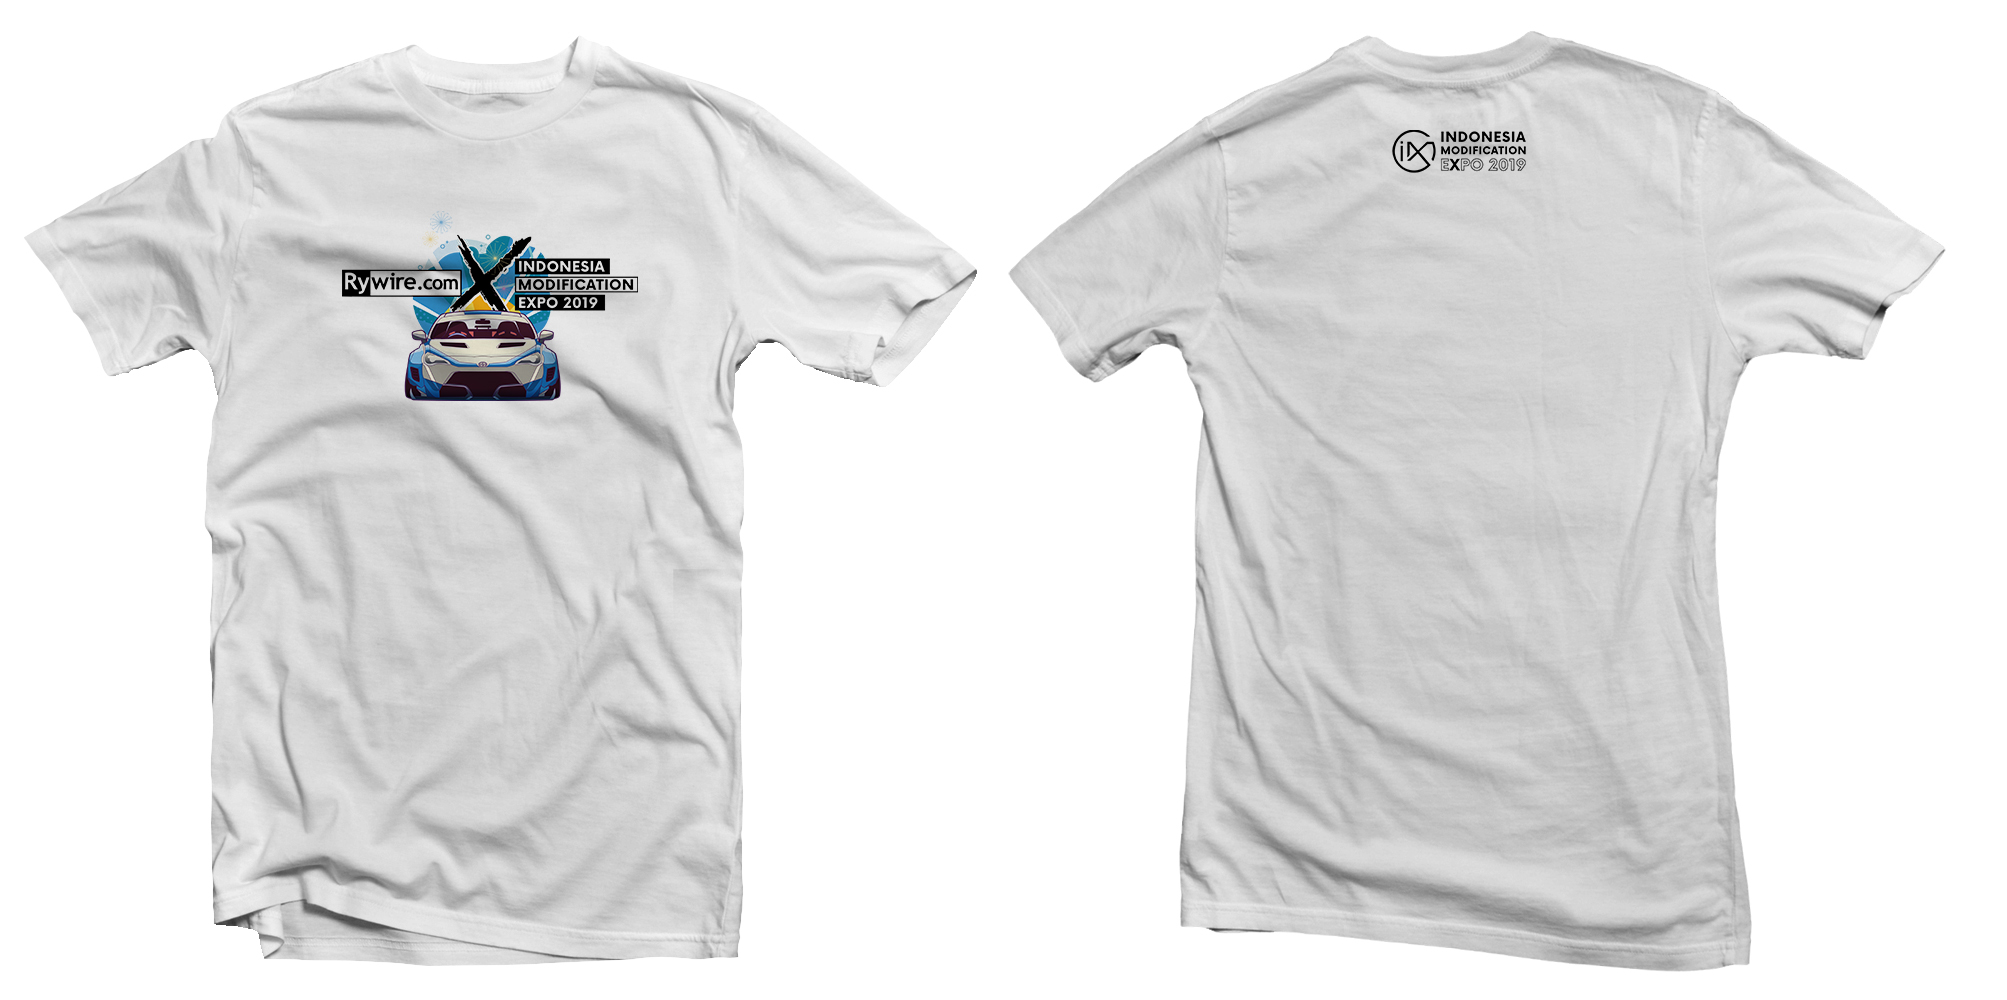 T-Shirt x rywire2